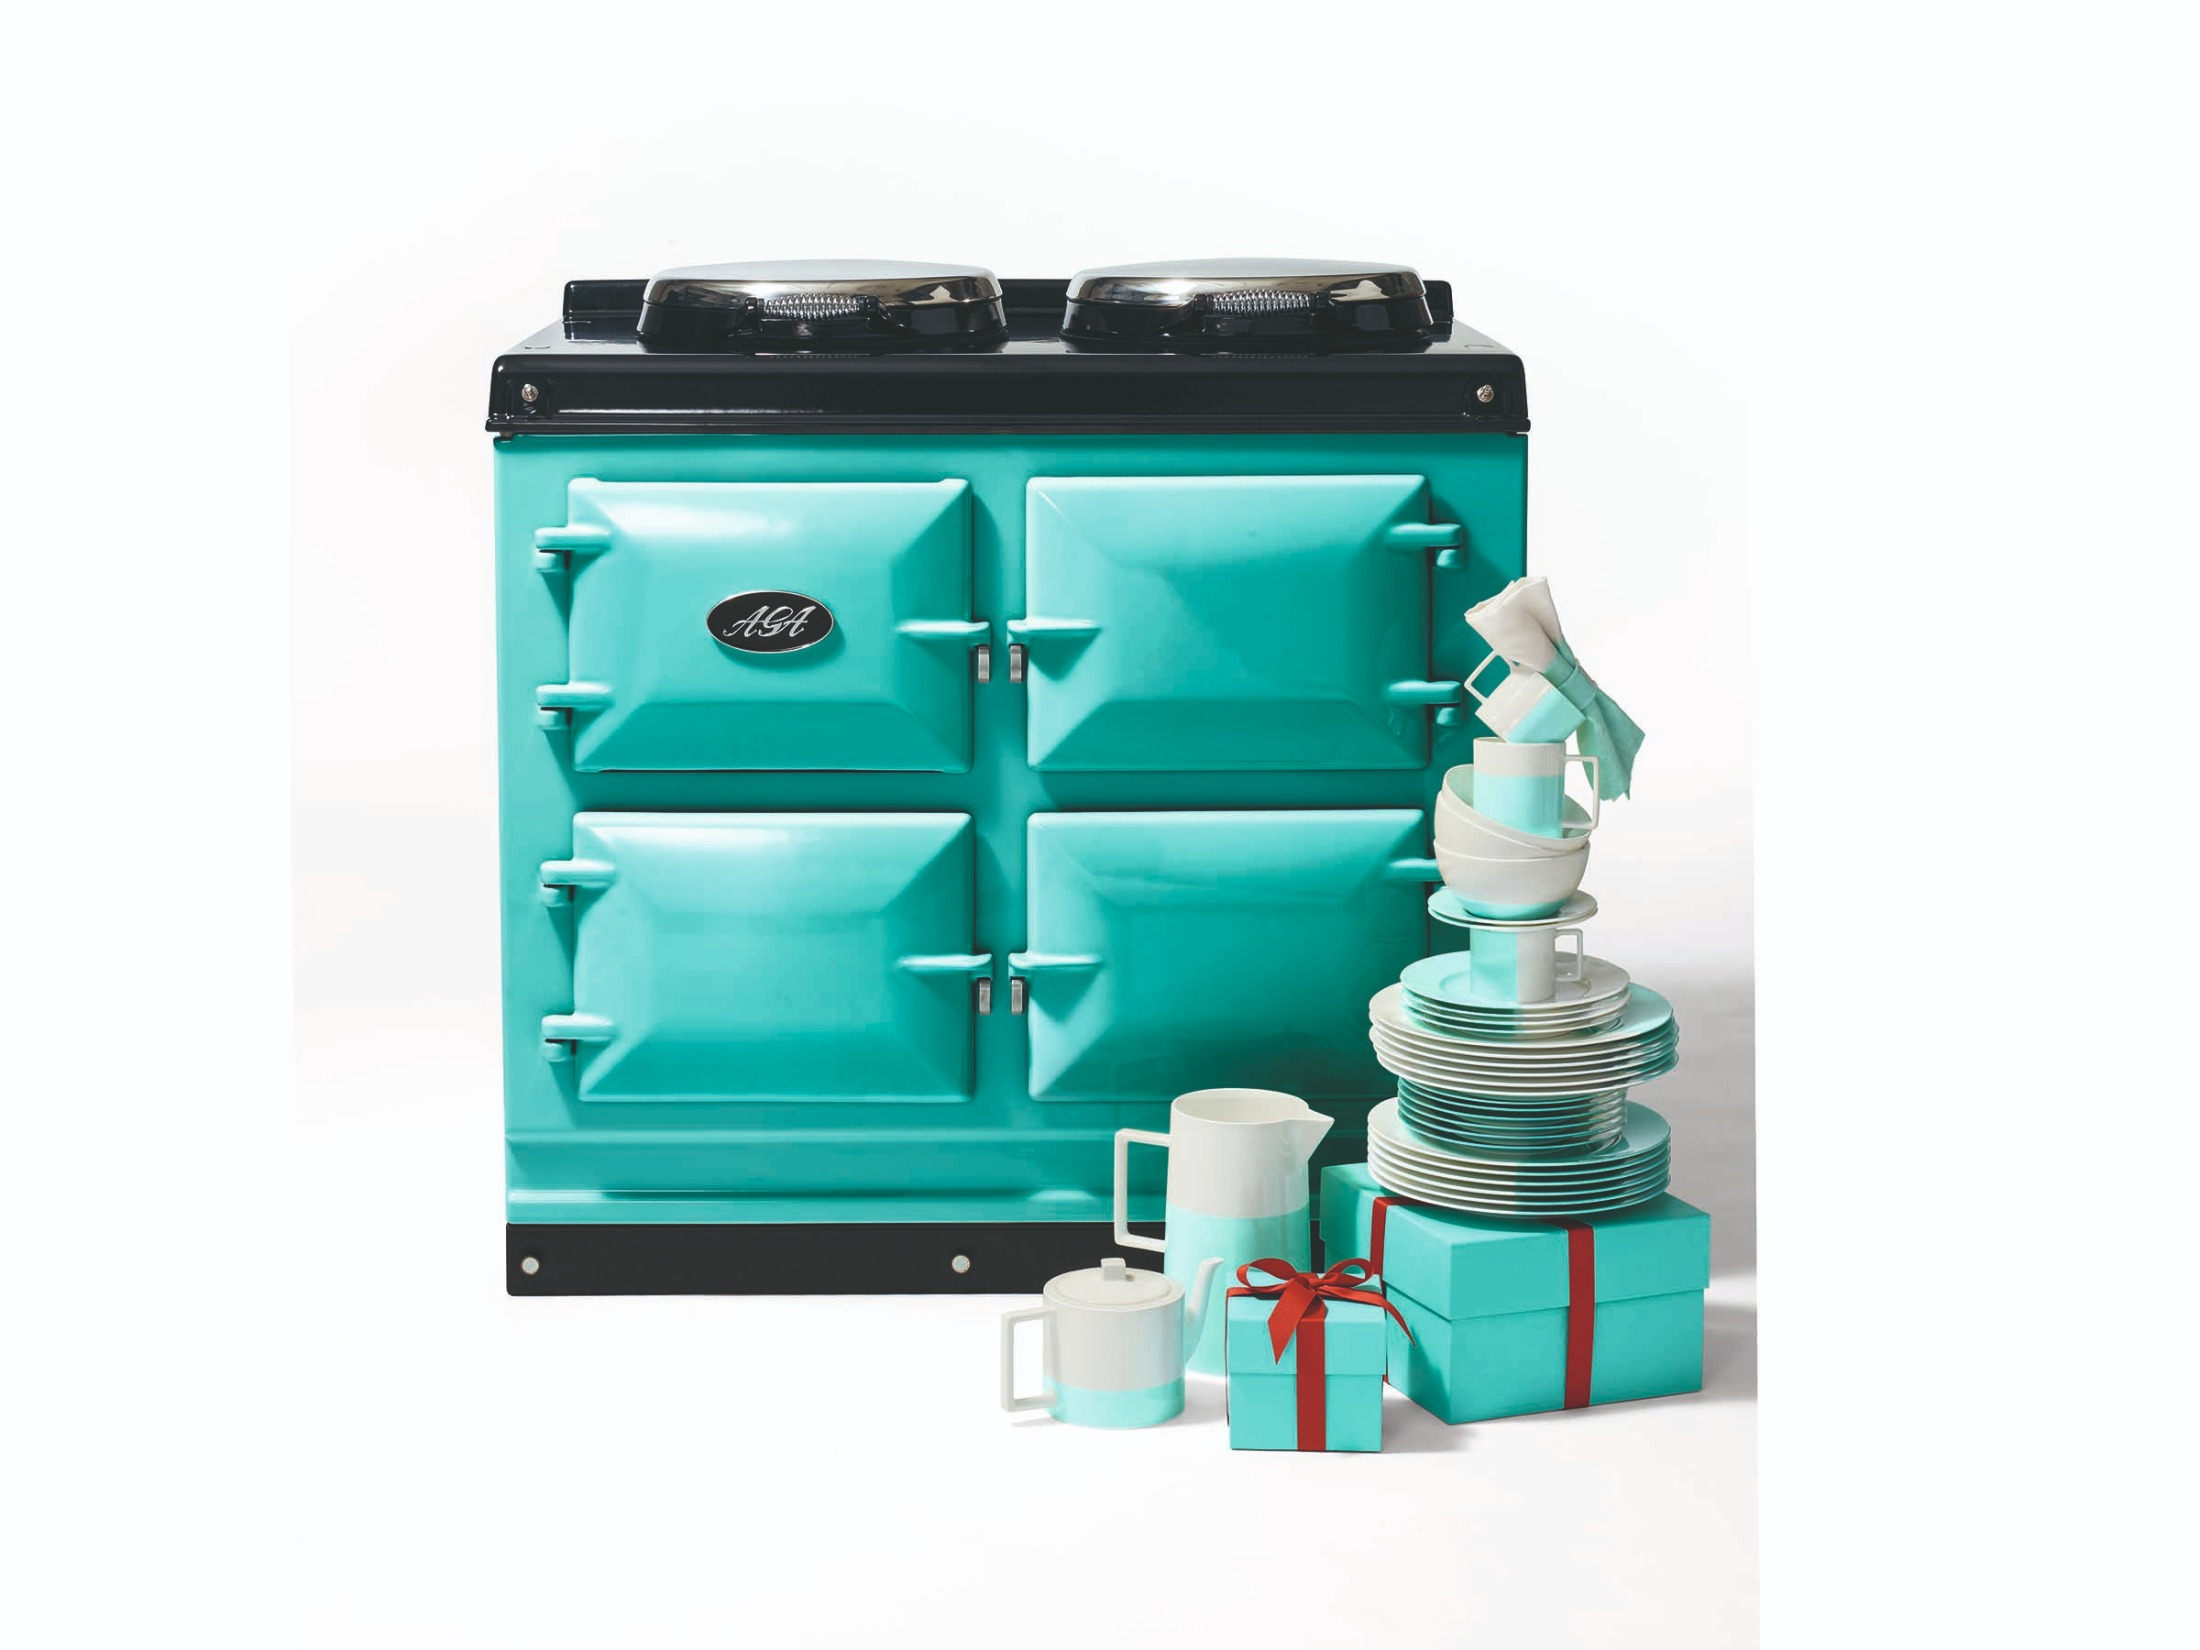 Tiffany & Co Aga Oven